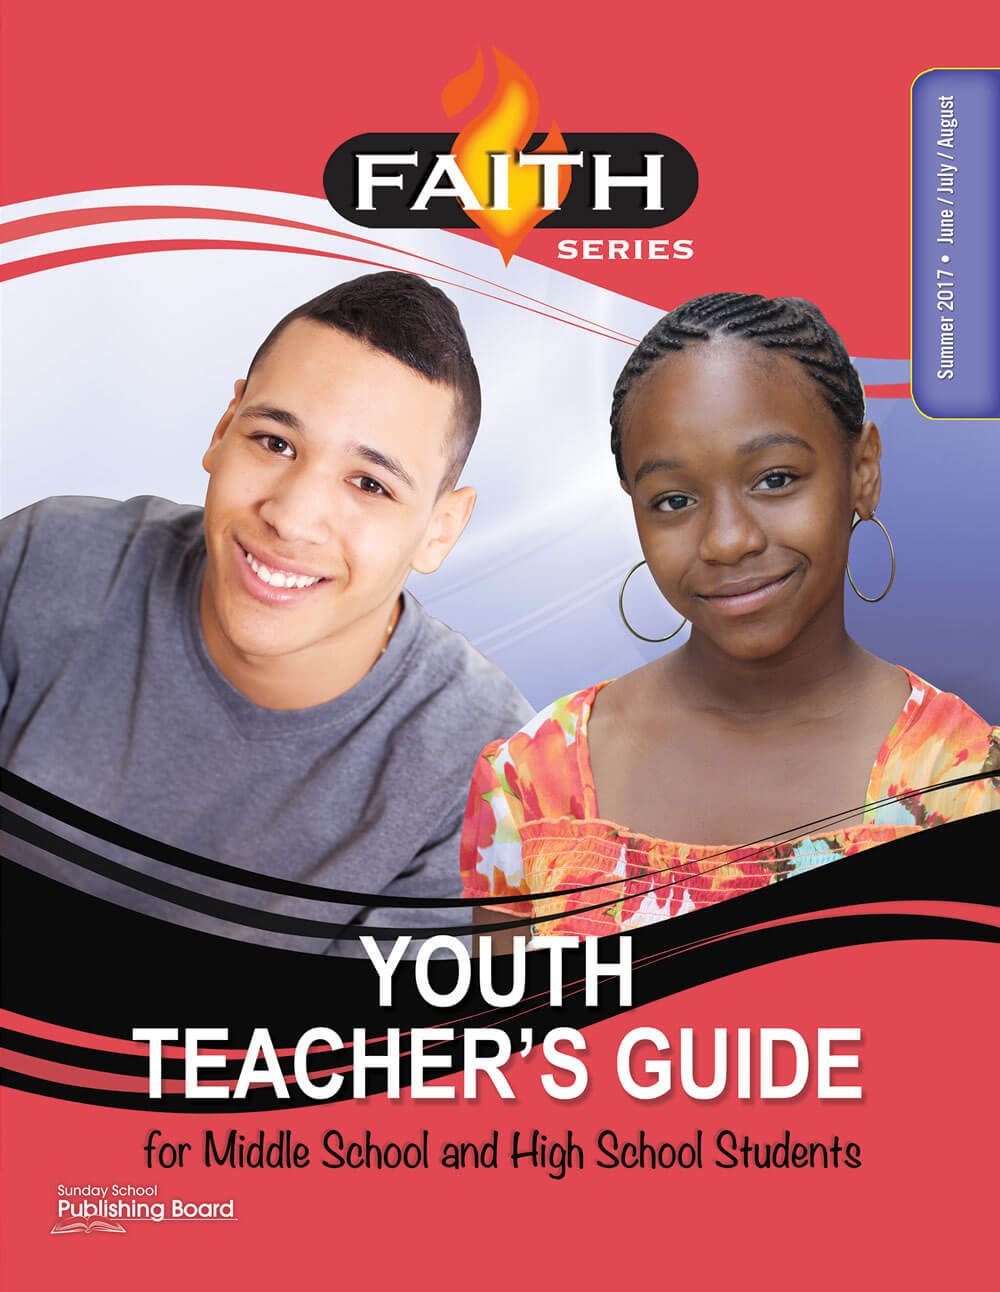 Faith Series Youth Teacher's Guide: For Middle School and High School Students (Summer 2017)–Digital Edition